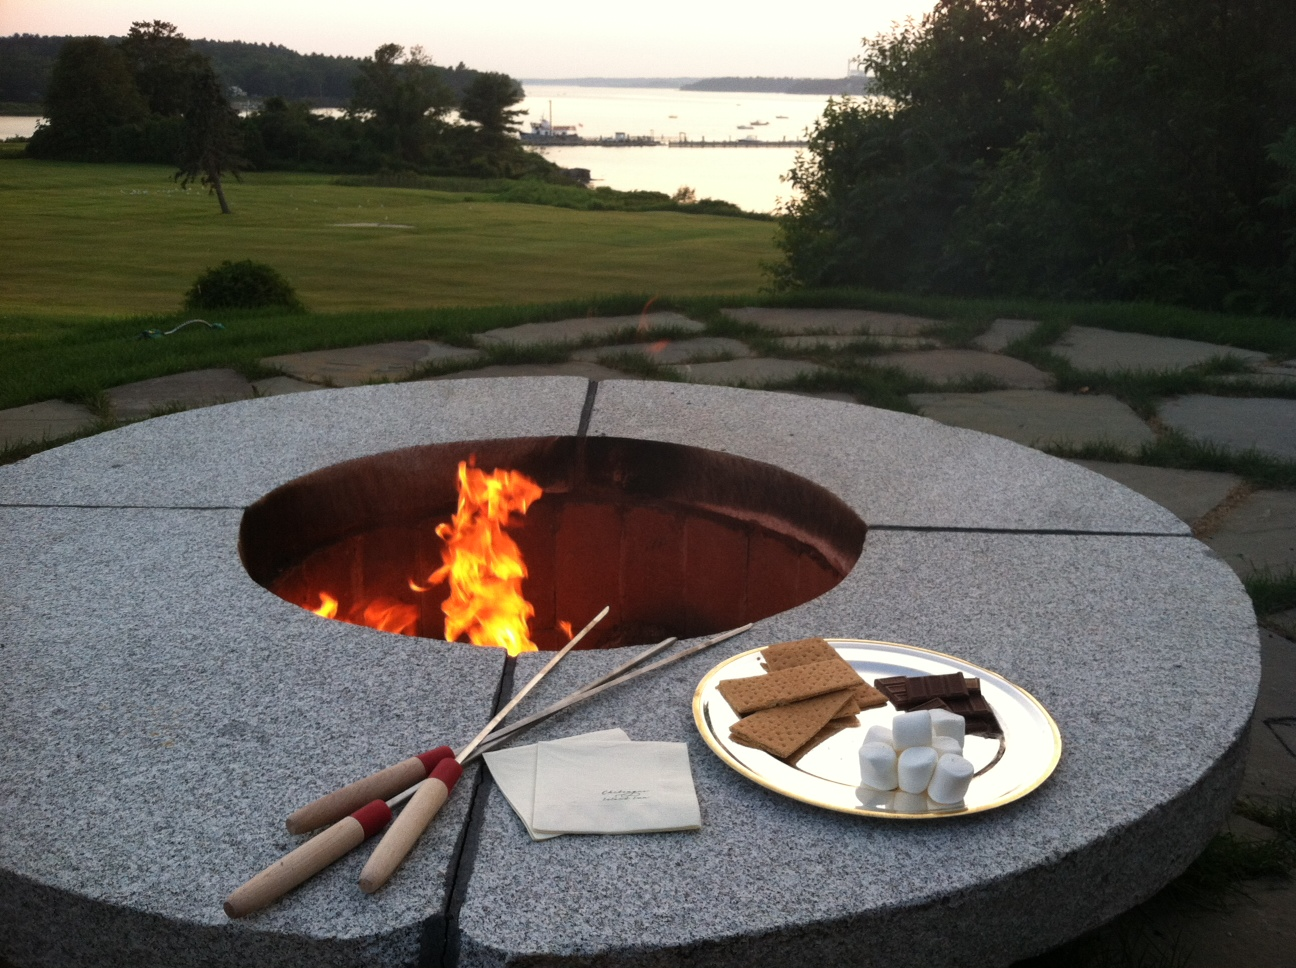 Nightly Bonfires - As the sun goes down, snuggle up next to the fire pit and delight in gooey, chocolatey s'mores. The simple pleasures of a starlit night and the perfectly roasted marshmallow are for guests of all ages. For the adults, we happily offer beer and wine.